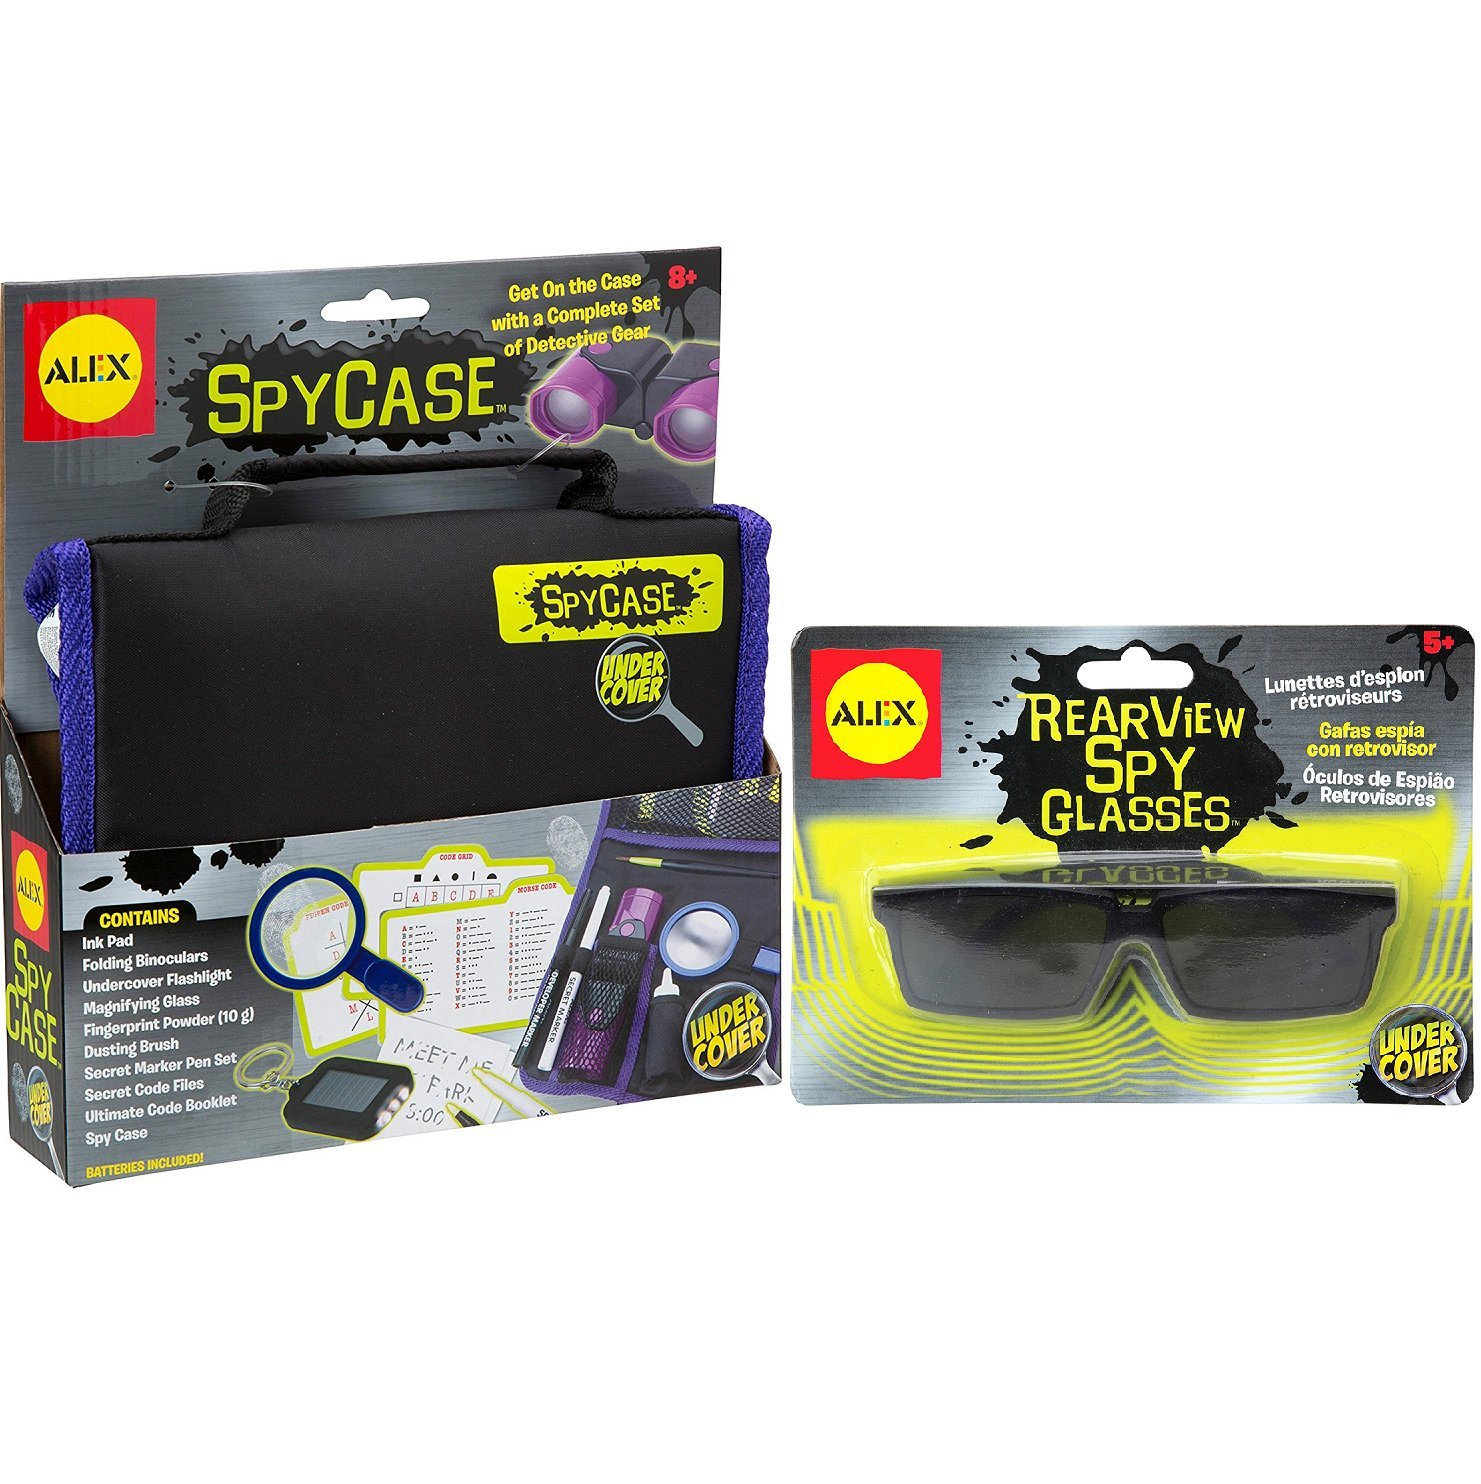 ALEX Toys Undercover Spy Case Detective Gear Set Rearview Spy Glasses, Great Value Kit!! by ALEX Toys